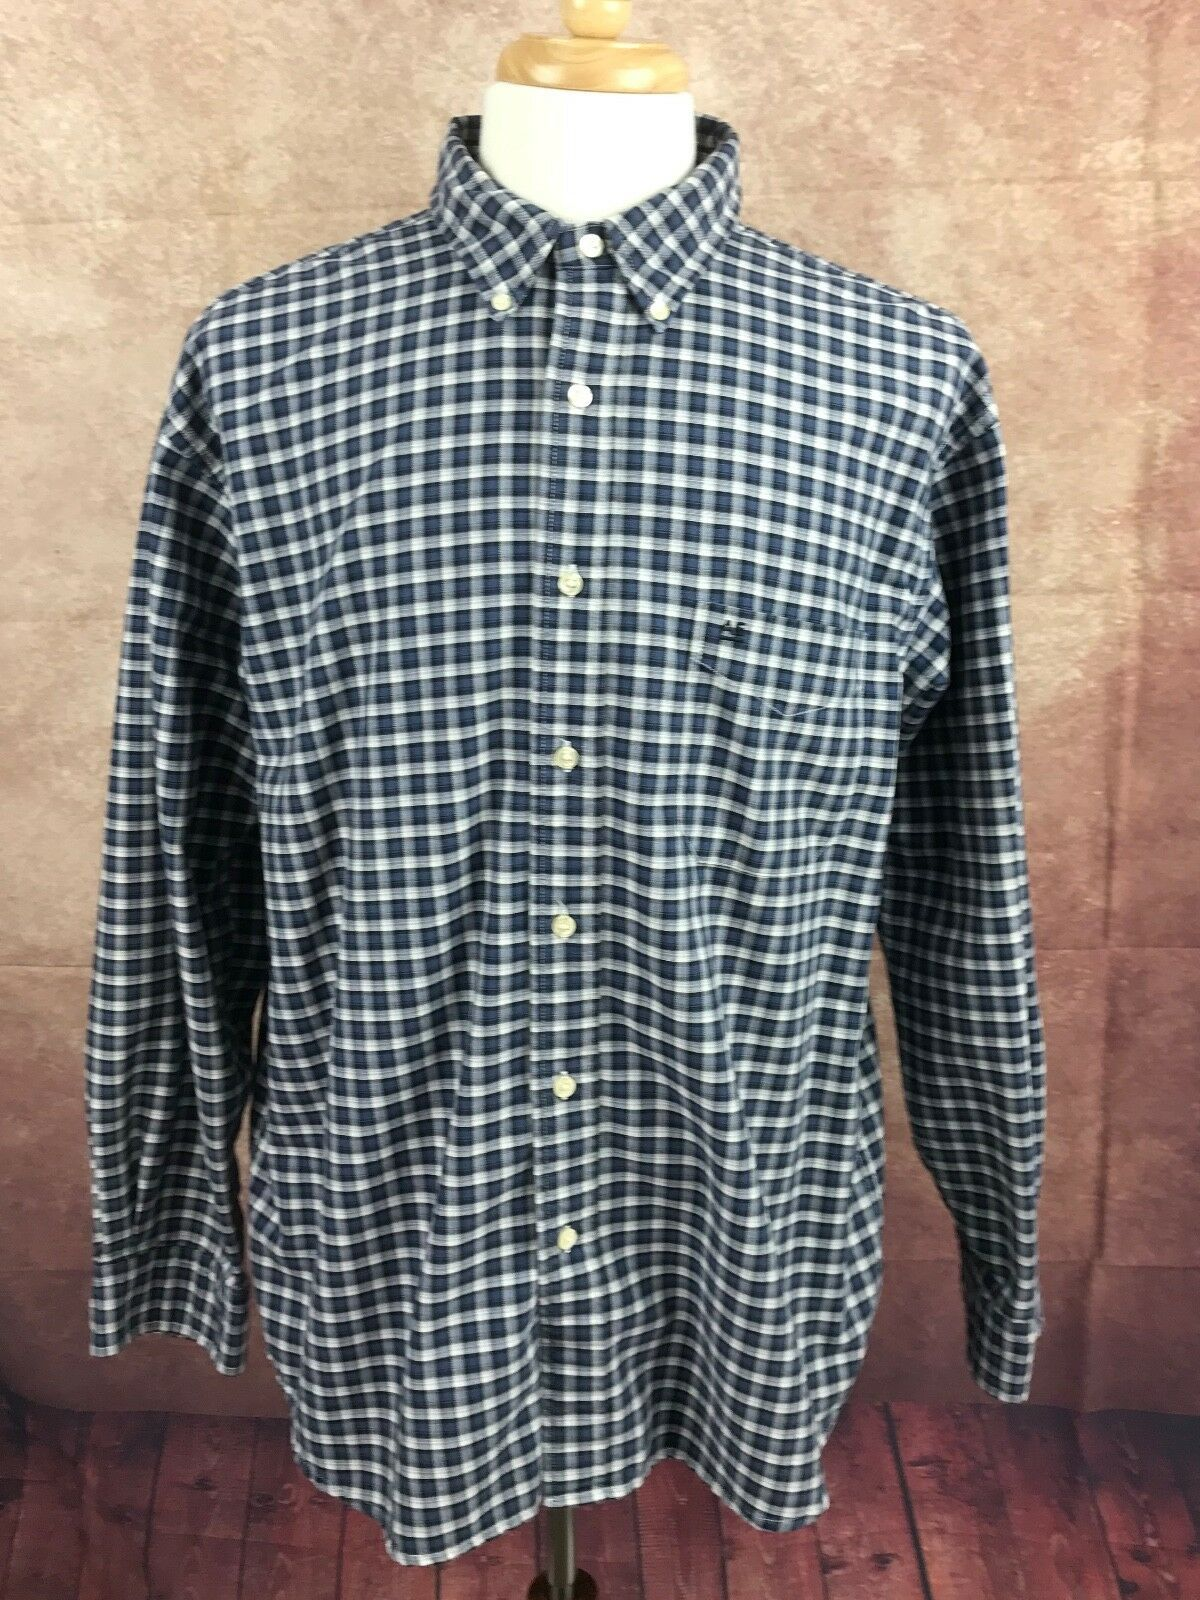 American Eagle Outfitters Men's Rugged Oxford Navy Blue White Check Shirt Large